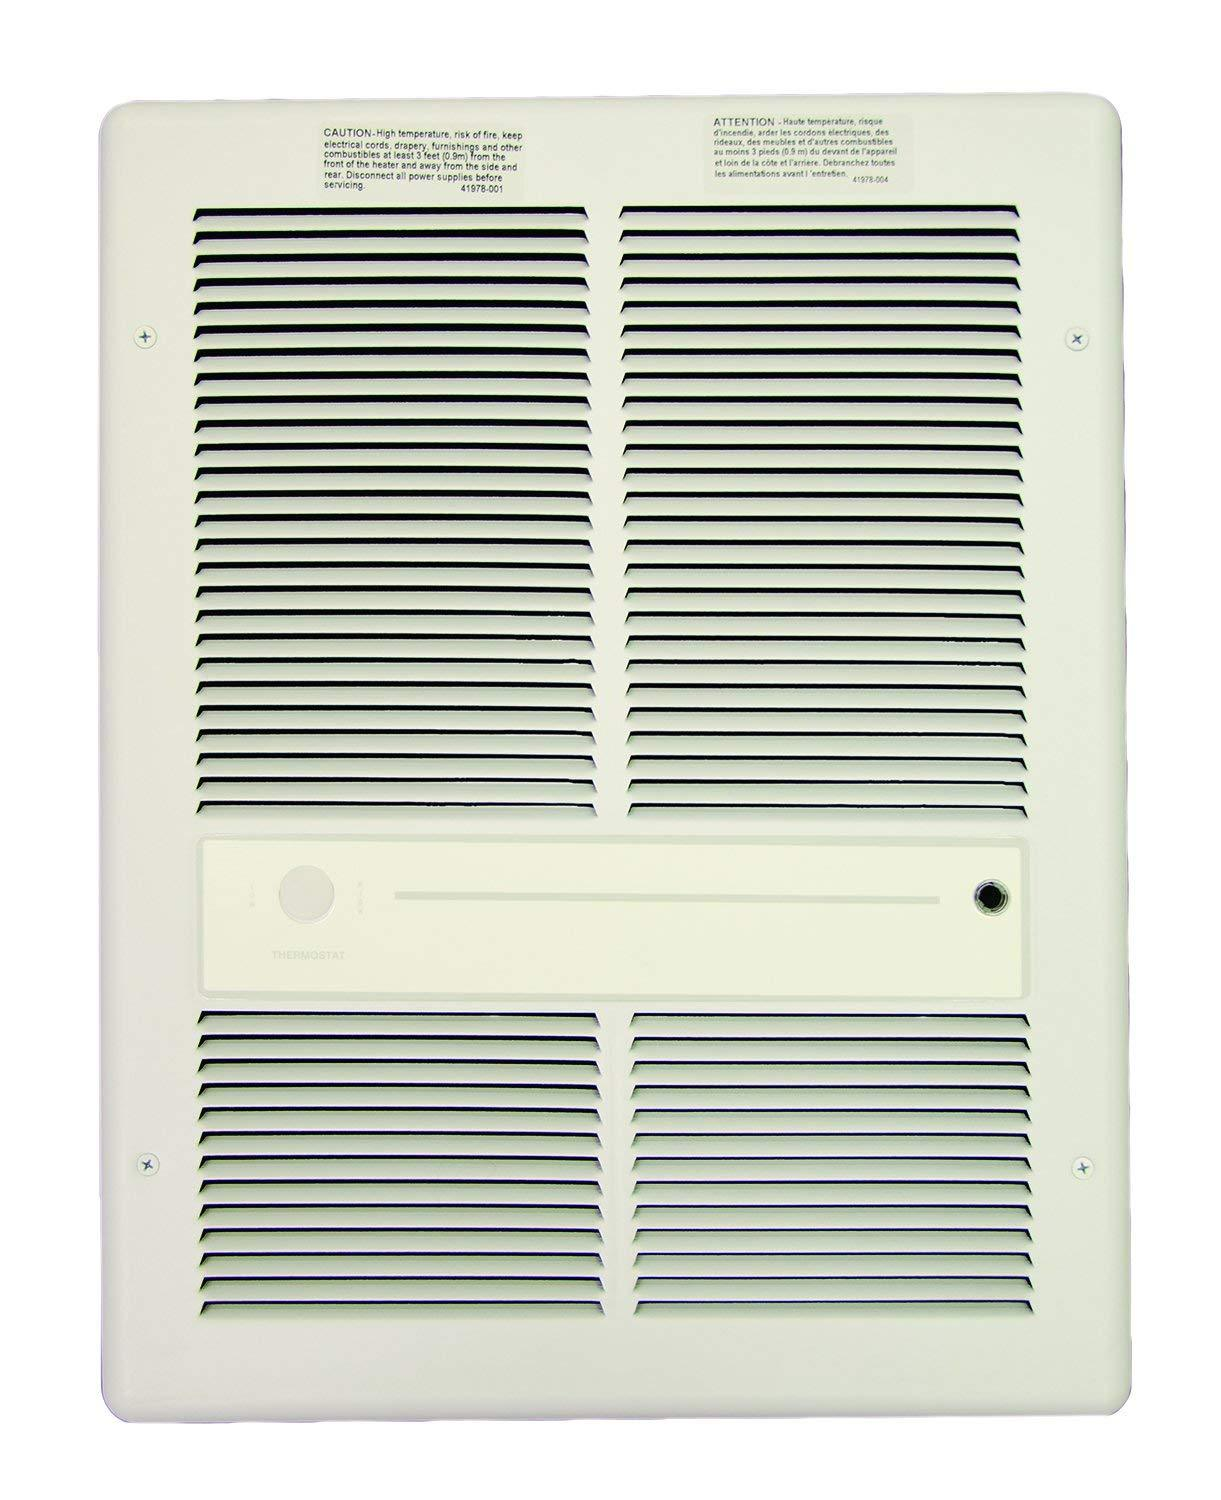 TPI 4000W 208V 3310 Series Fan Forced Wall Heater (White) - Without Summer Fan Switch - 1 Pole Thermostat - F3316TRPW